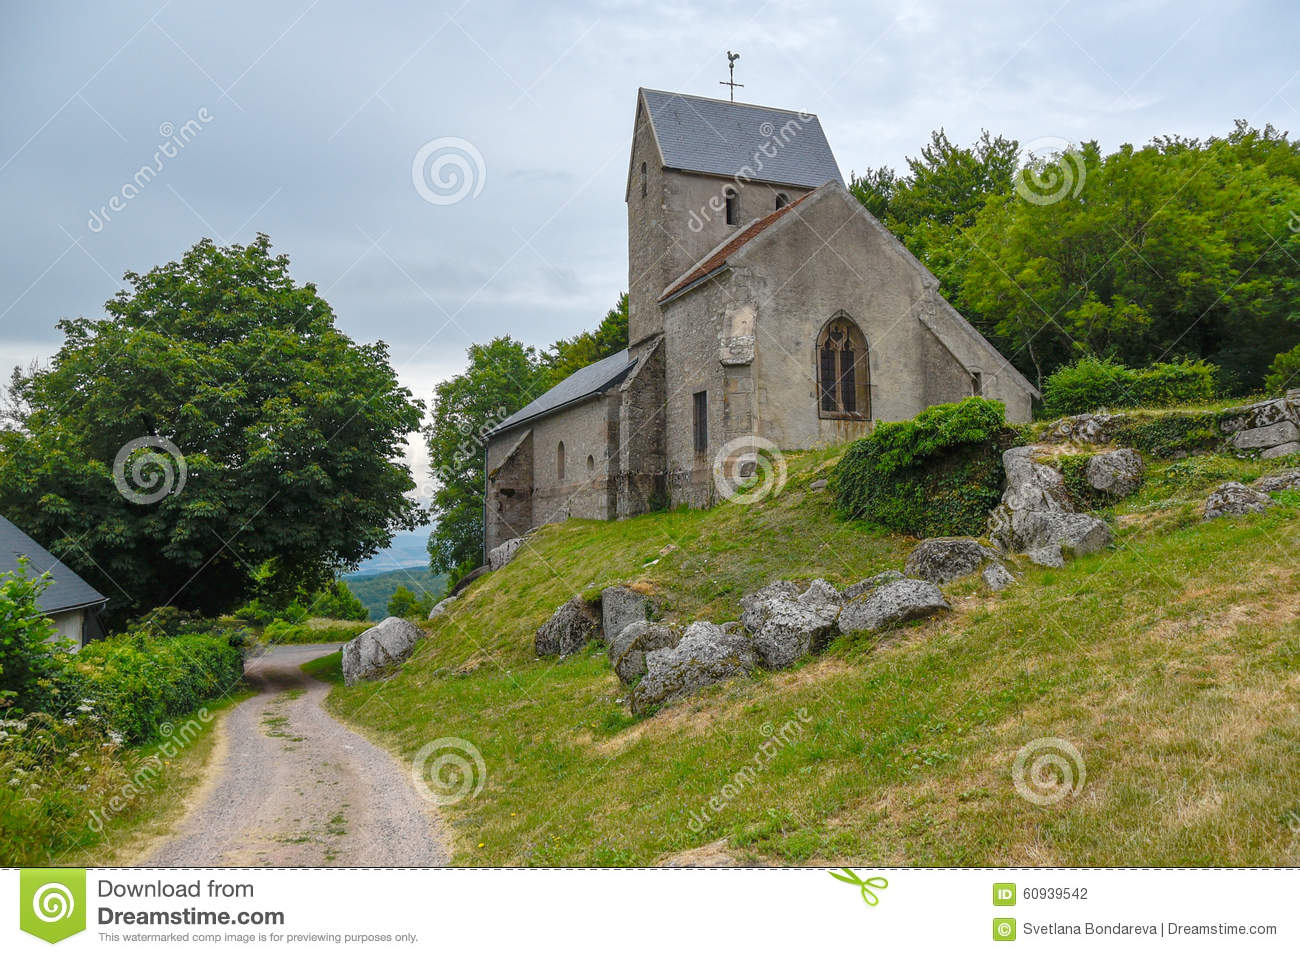 catholic single men in french village We have identified two frenchmen as precursors of the enlightenment, as men without  moving to a cottage in the village of  the age of the enlightenment is.